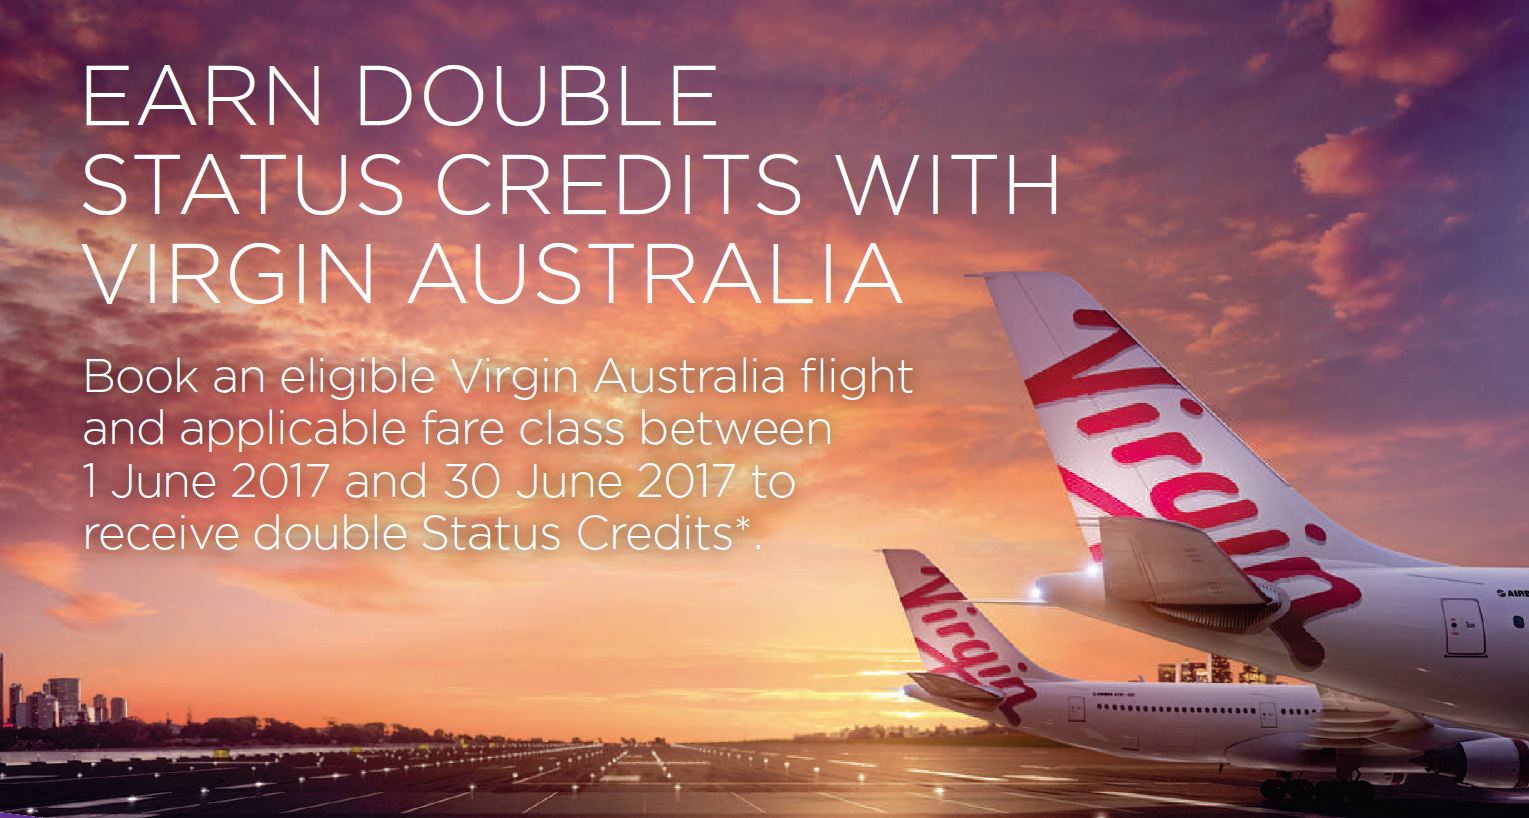 Earn double Status Credits with Virgin